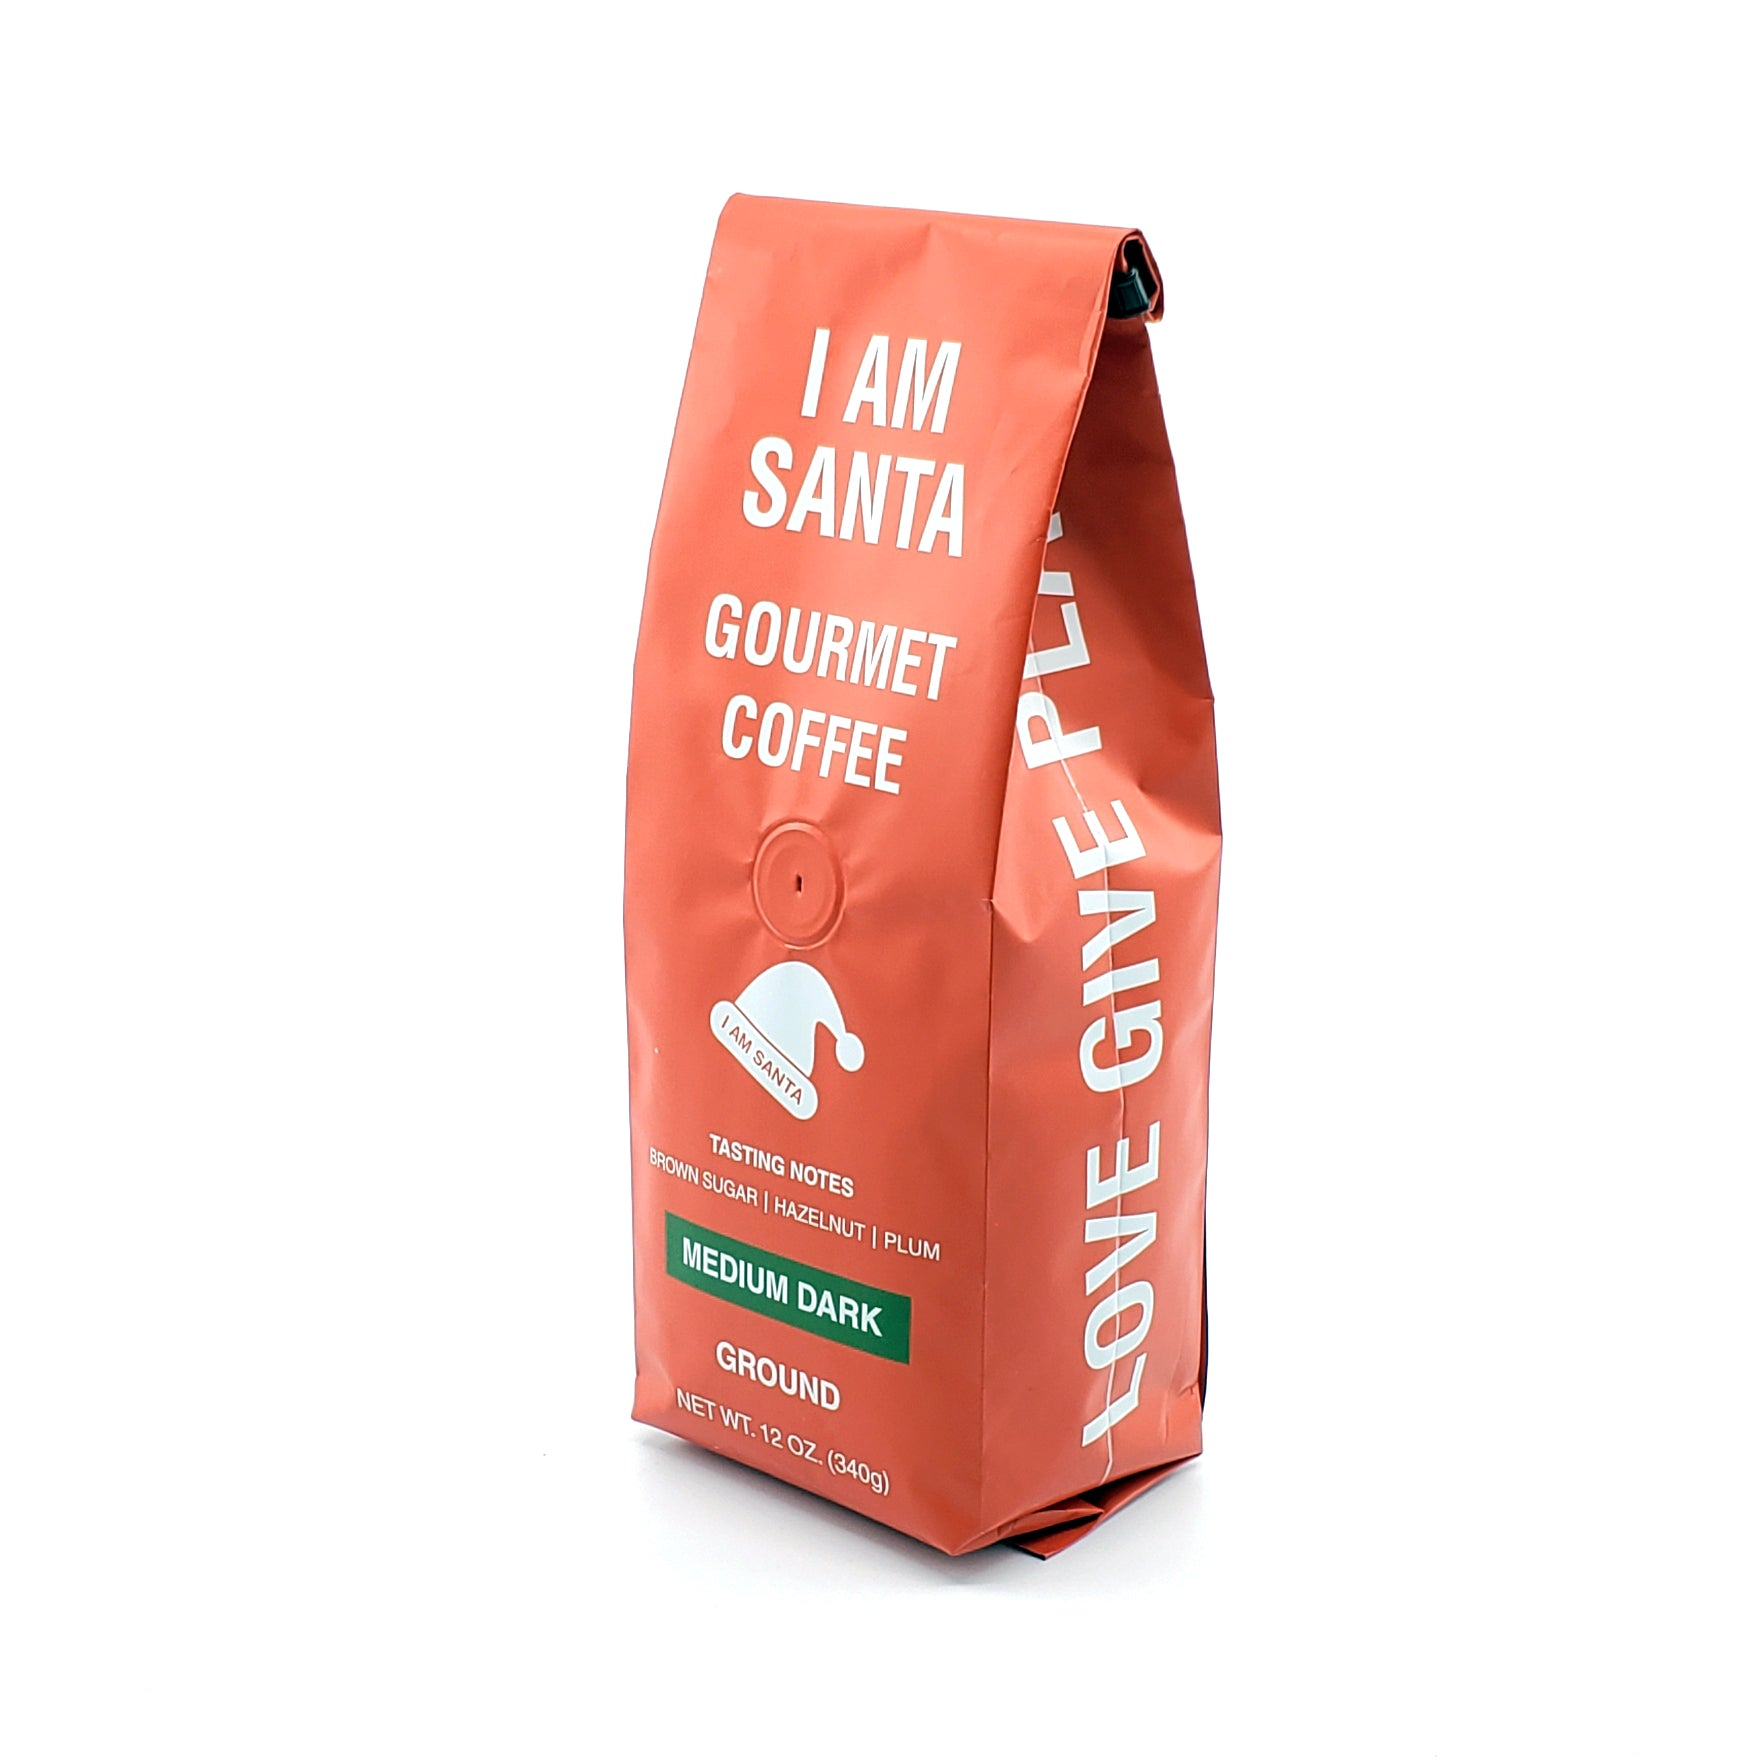 I am Santa - Gourmet Coffee